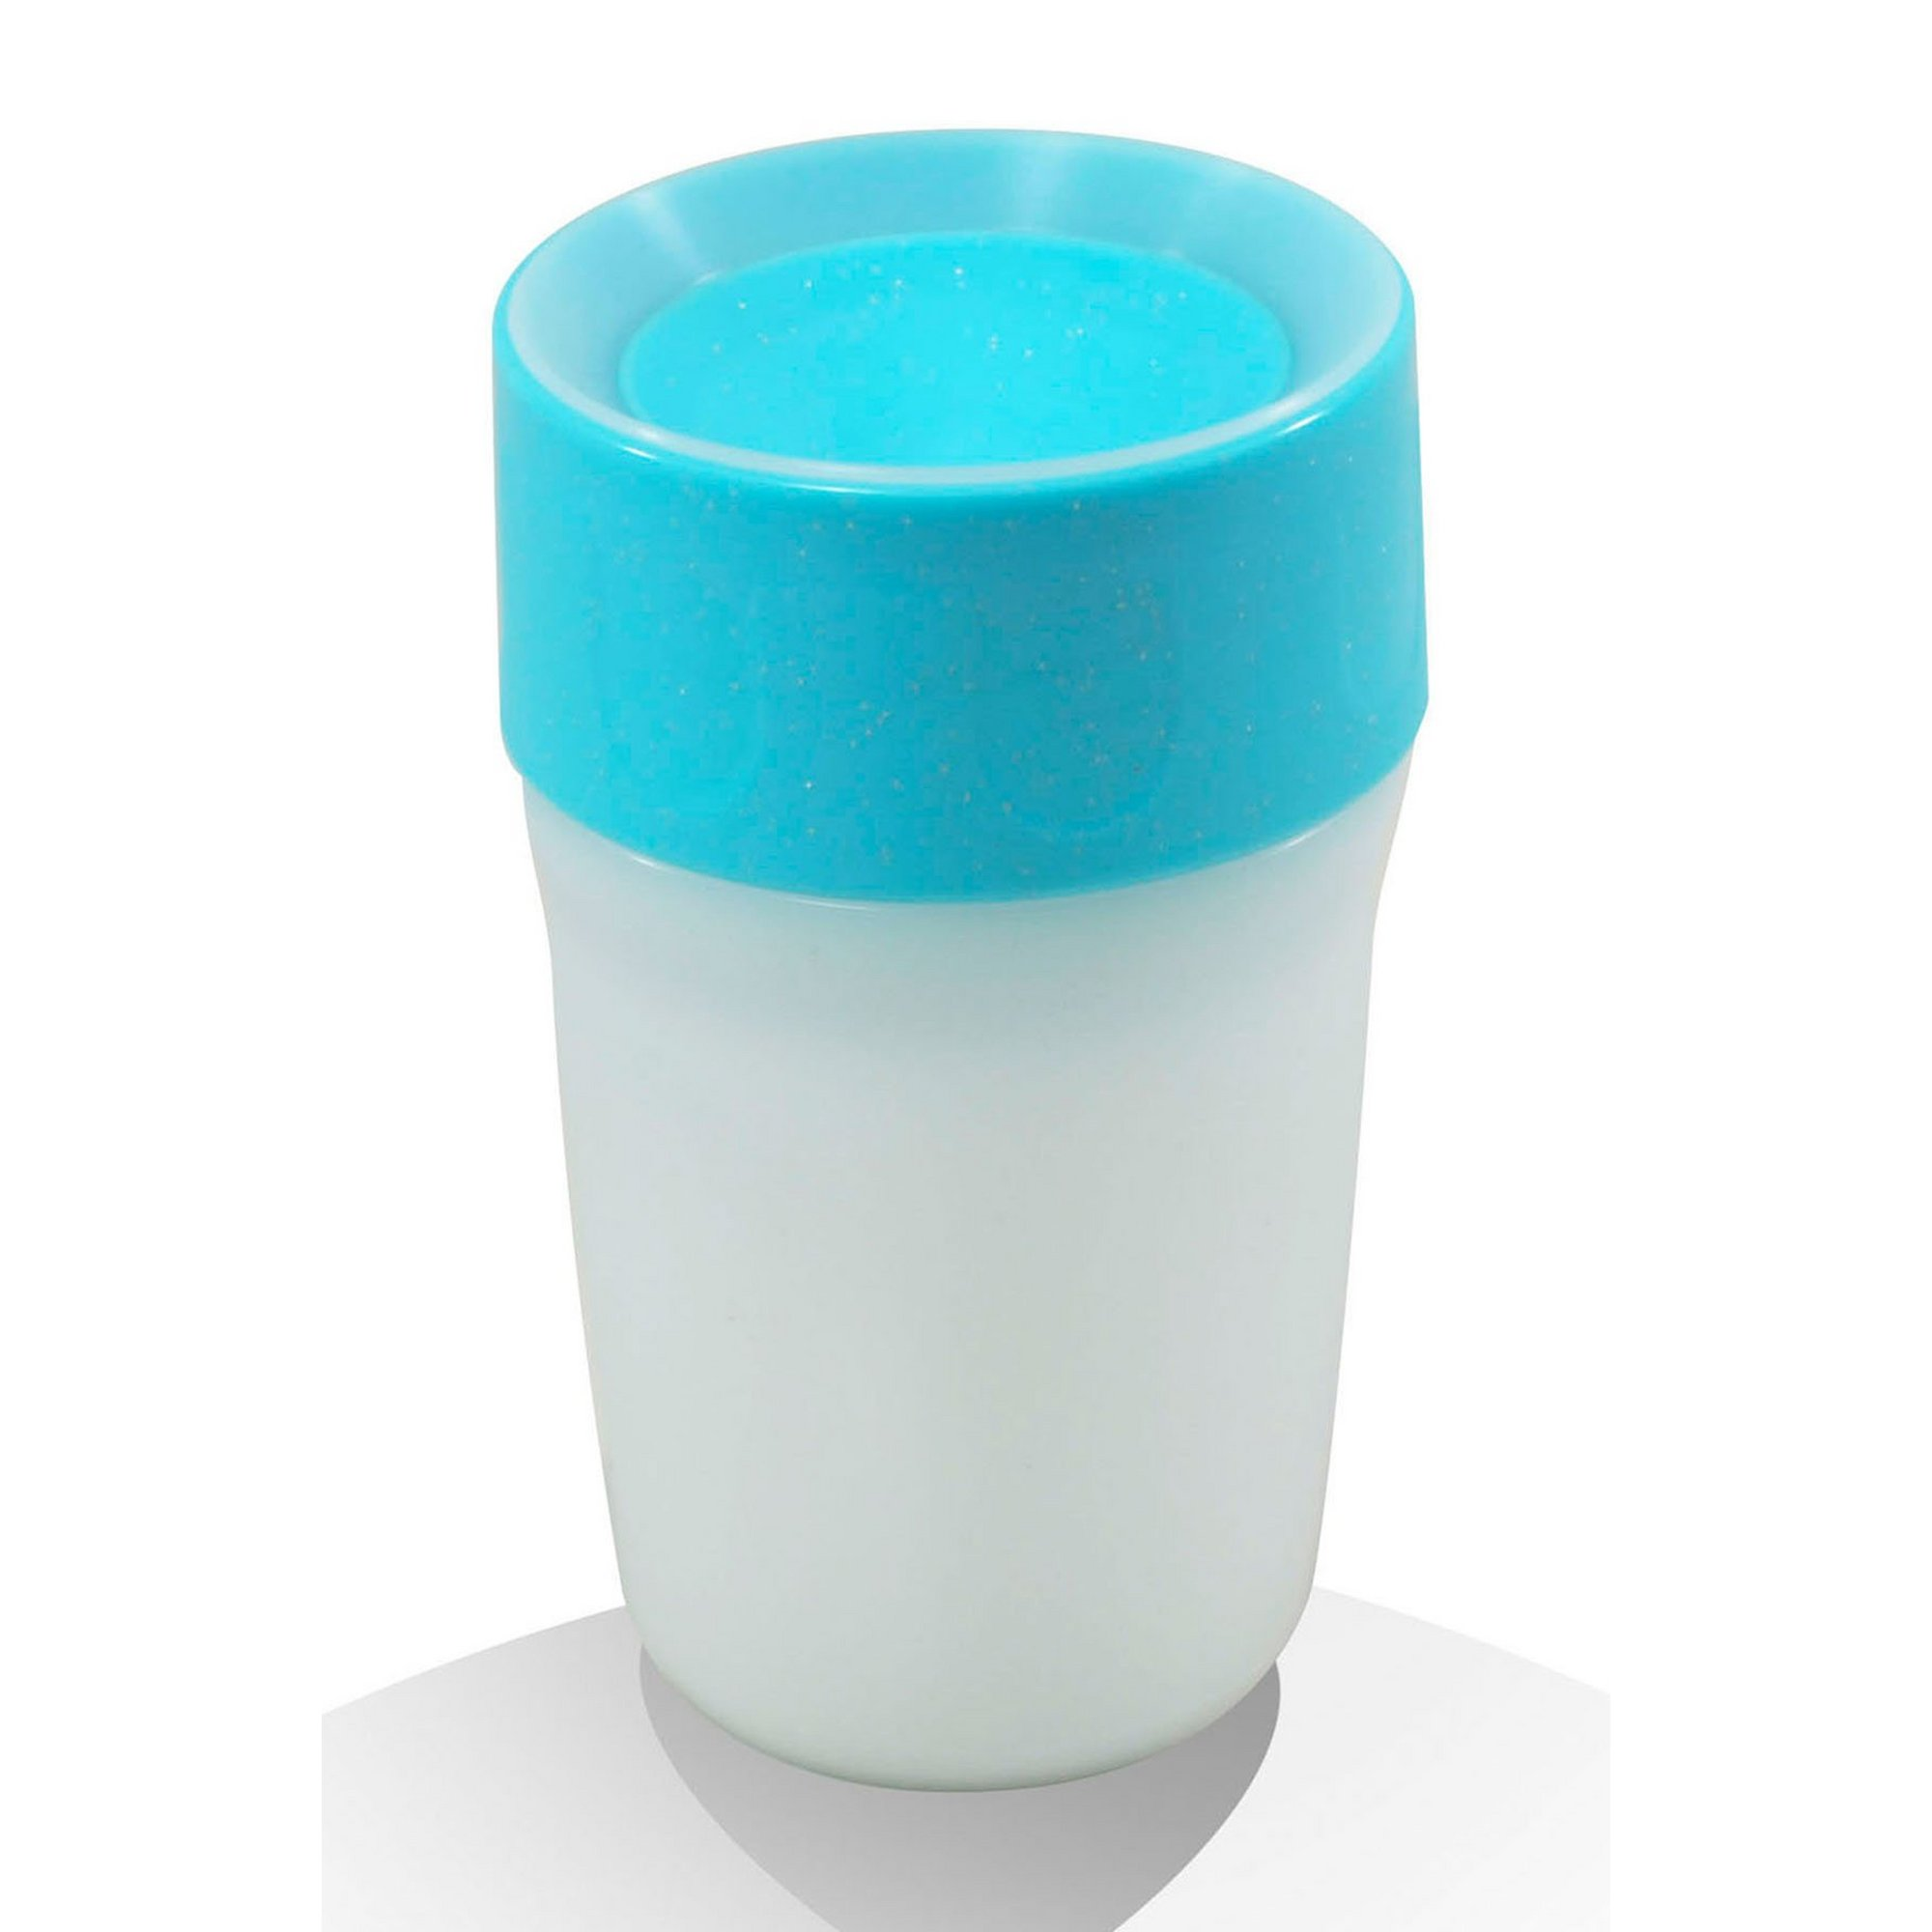 Image of Little LiteCup Sippy Cup with Night Light